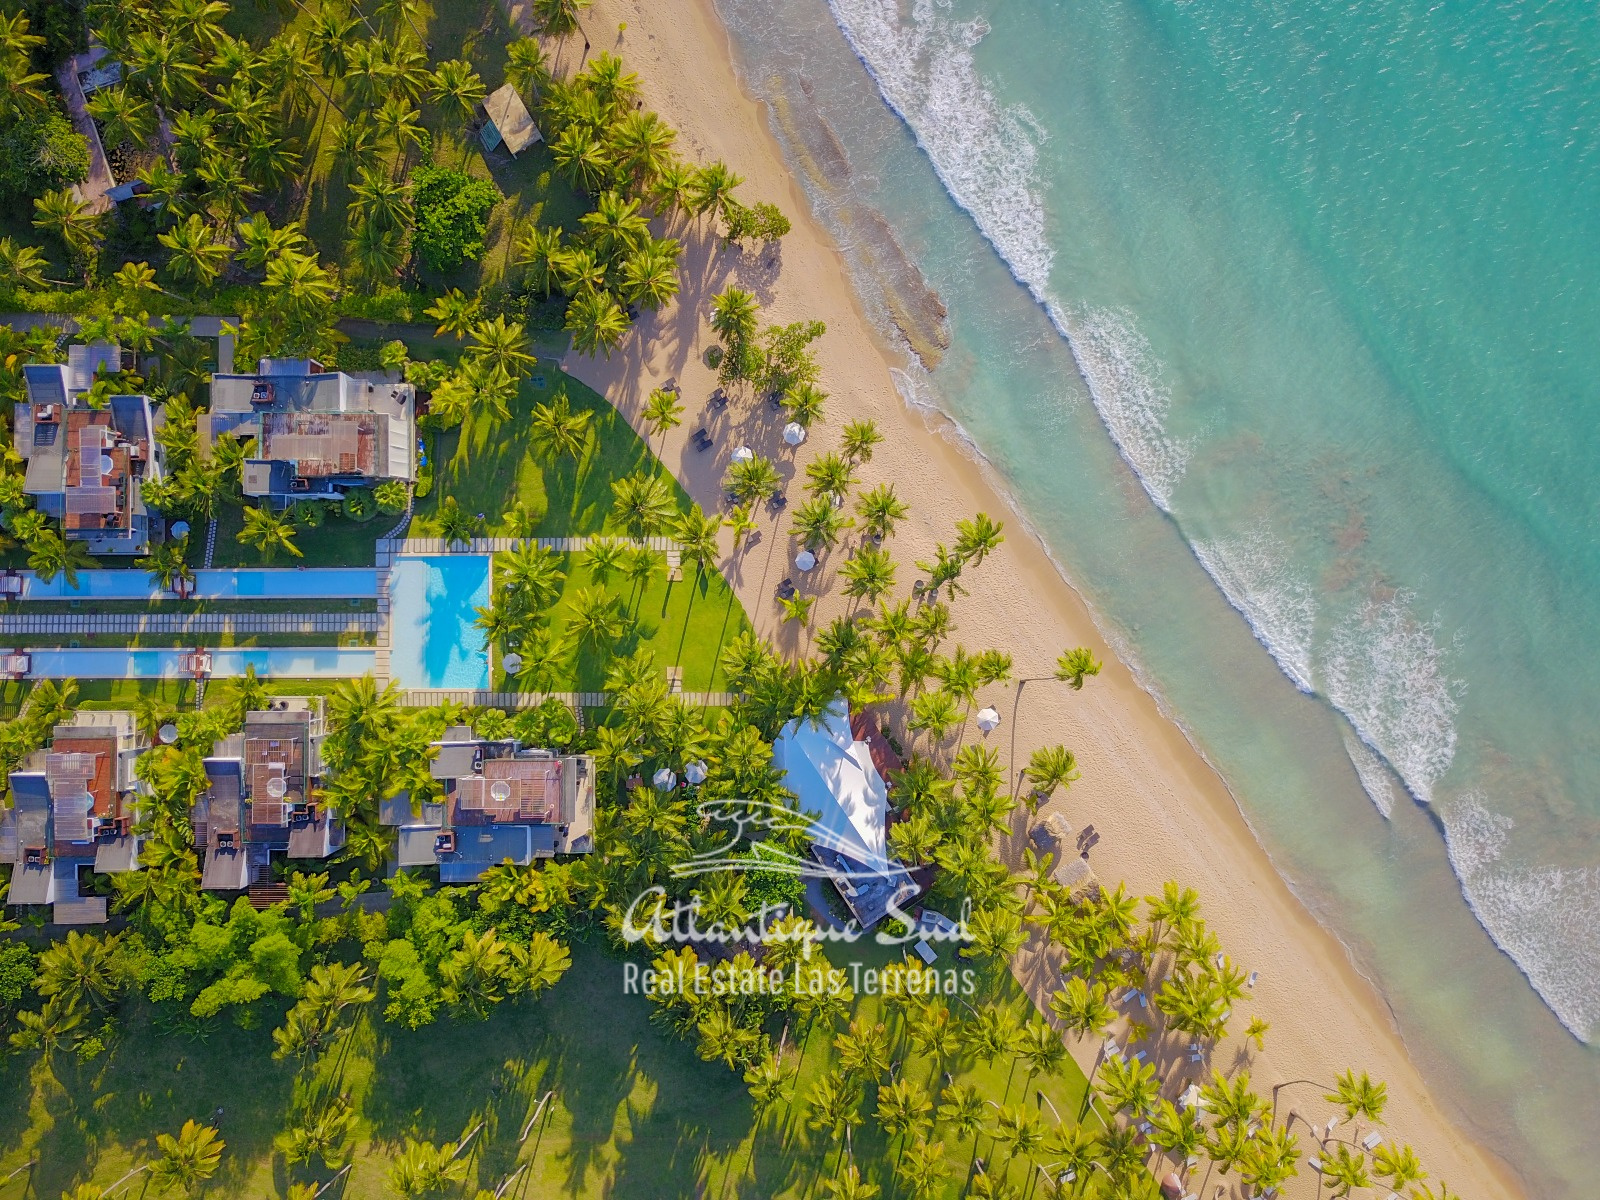 Luxurious condos in all-inclusive beachfront hotel Real Estate Las Terrenas Atlantique Sud10.jpeg